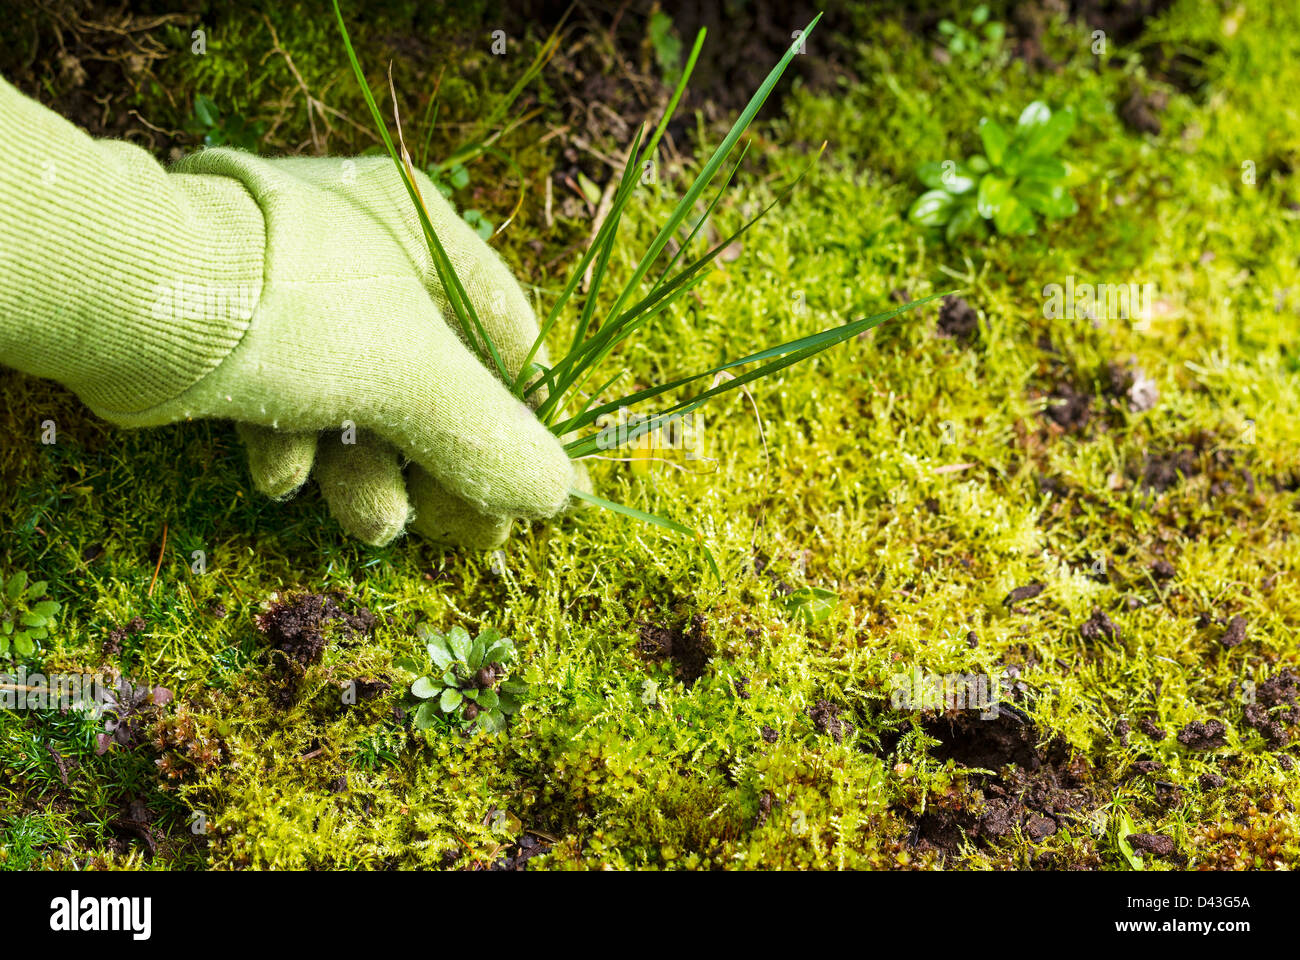 Horizontal photo of gloved hand pulling grass weed out of garden - Stock Image